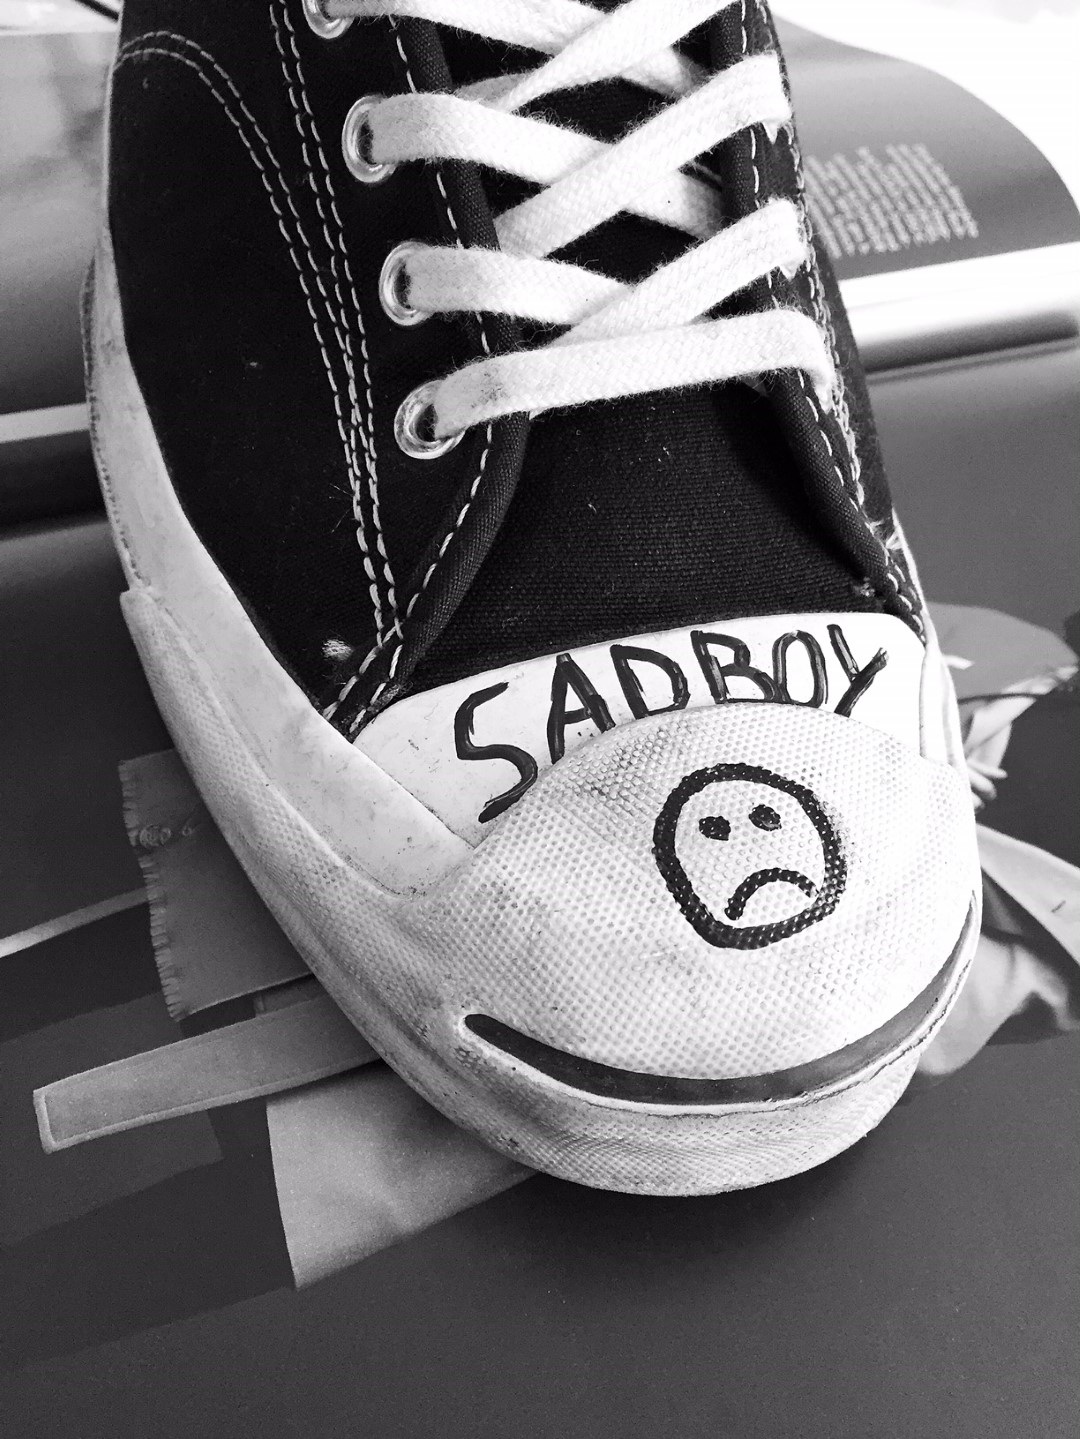 sadboy for ever and longer